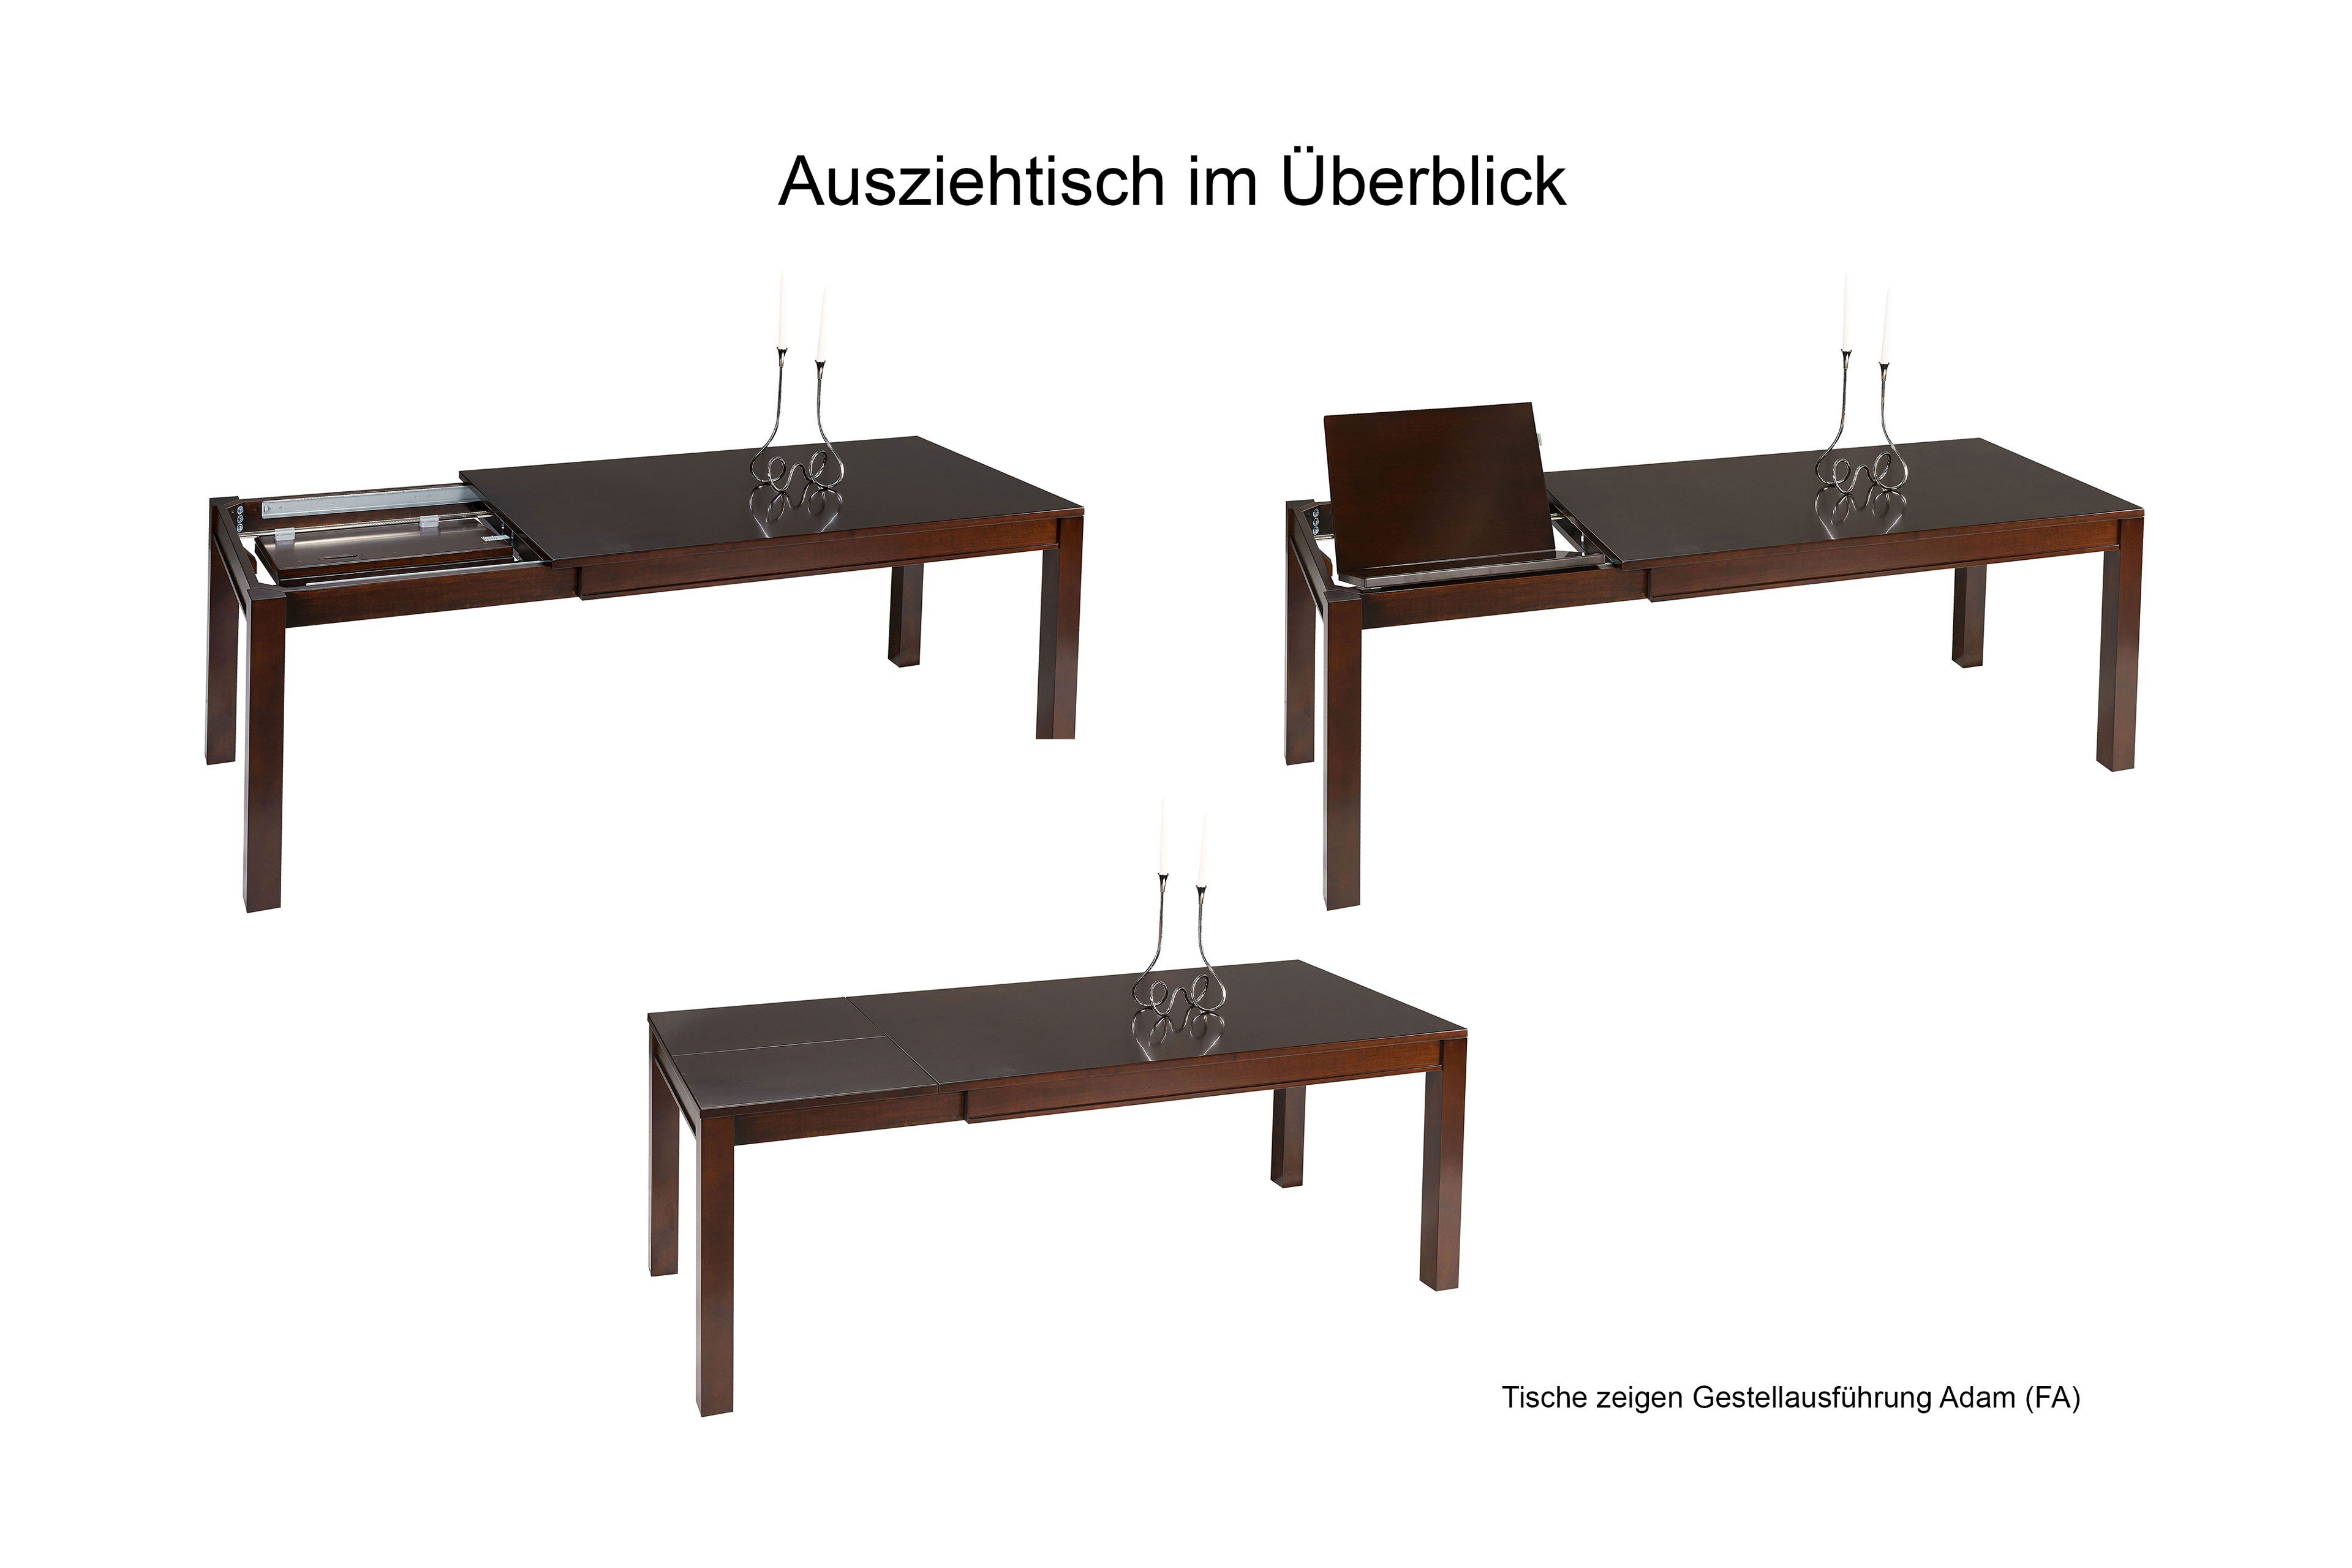 selva mbel kirschbaum fabulous gorgeous wohnwand. Black Bedroom Furniture Sets. Home Design Ideas